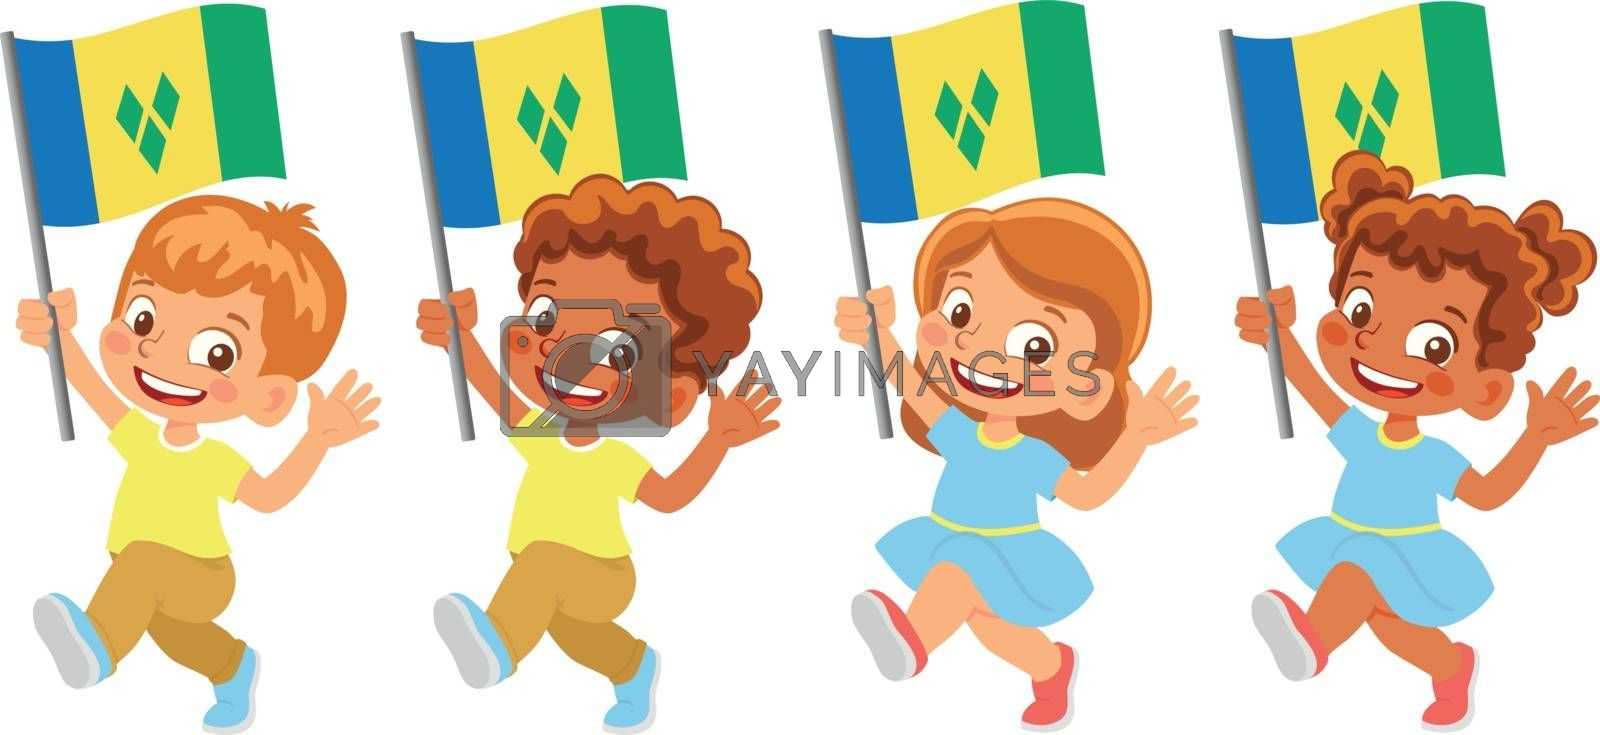 Saint Vincent and the Grenadines flag in hand. Children holding flag. National flag of Saint Vincent and the Grenadines vector